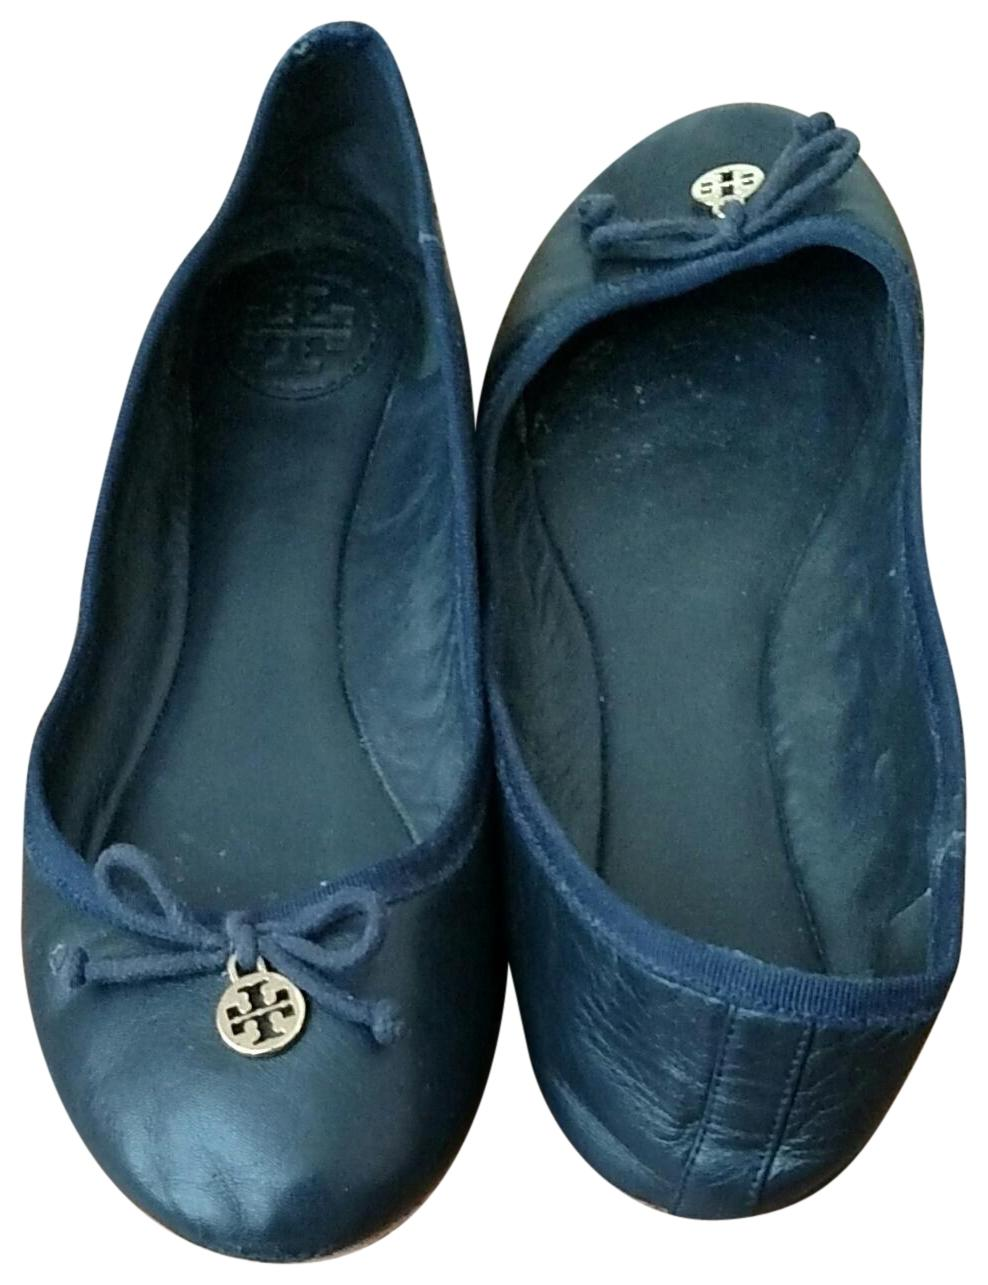 Tory Burch Navy Blue Soft Leather Ballet with Gold Gold Gold Logo On Toe (22138206) Flats Size US 8 Regular (M, B) 999591